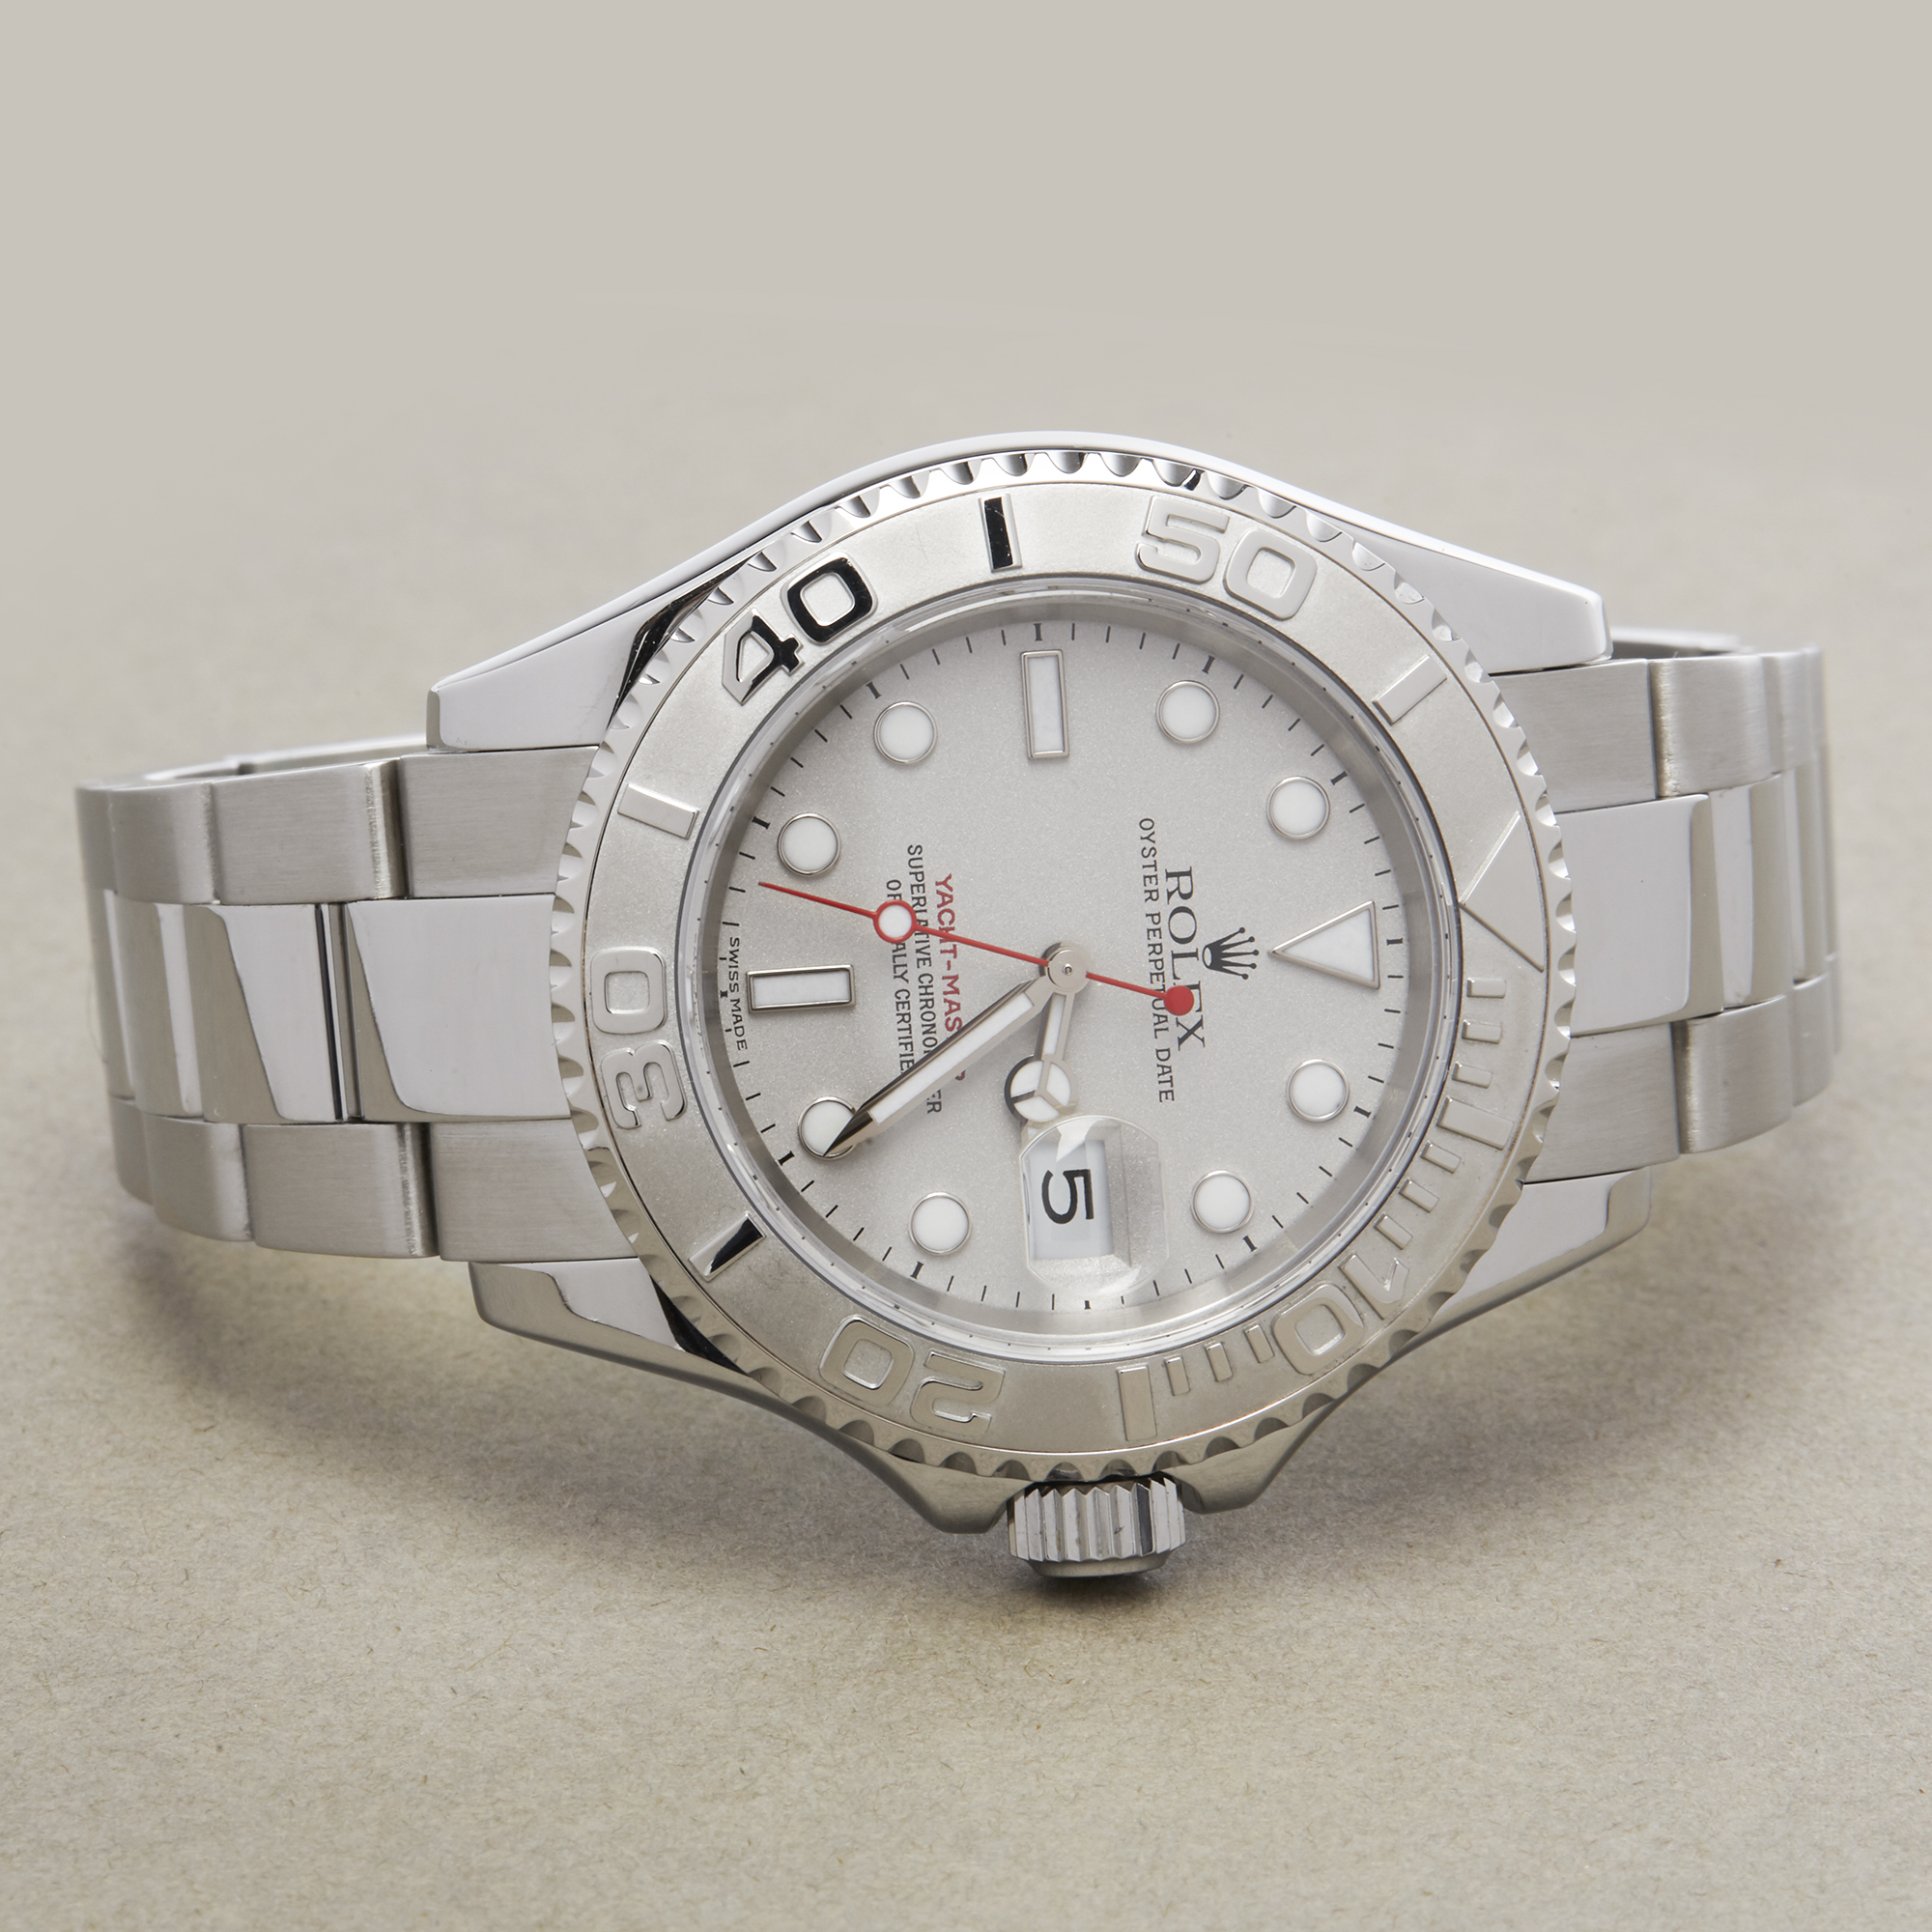 Rolex Yacht-Master 40 16622 Men's Stainless Steel Watch - Image 8 of 10